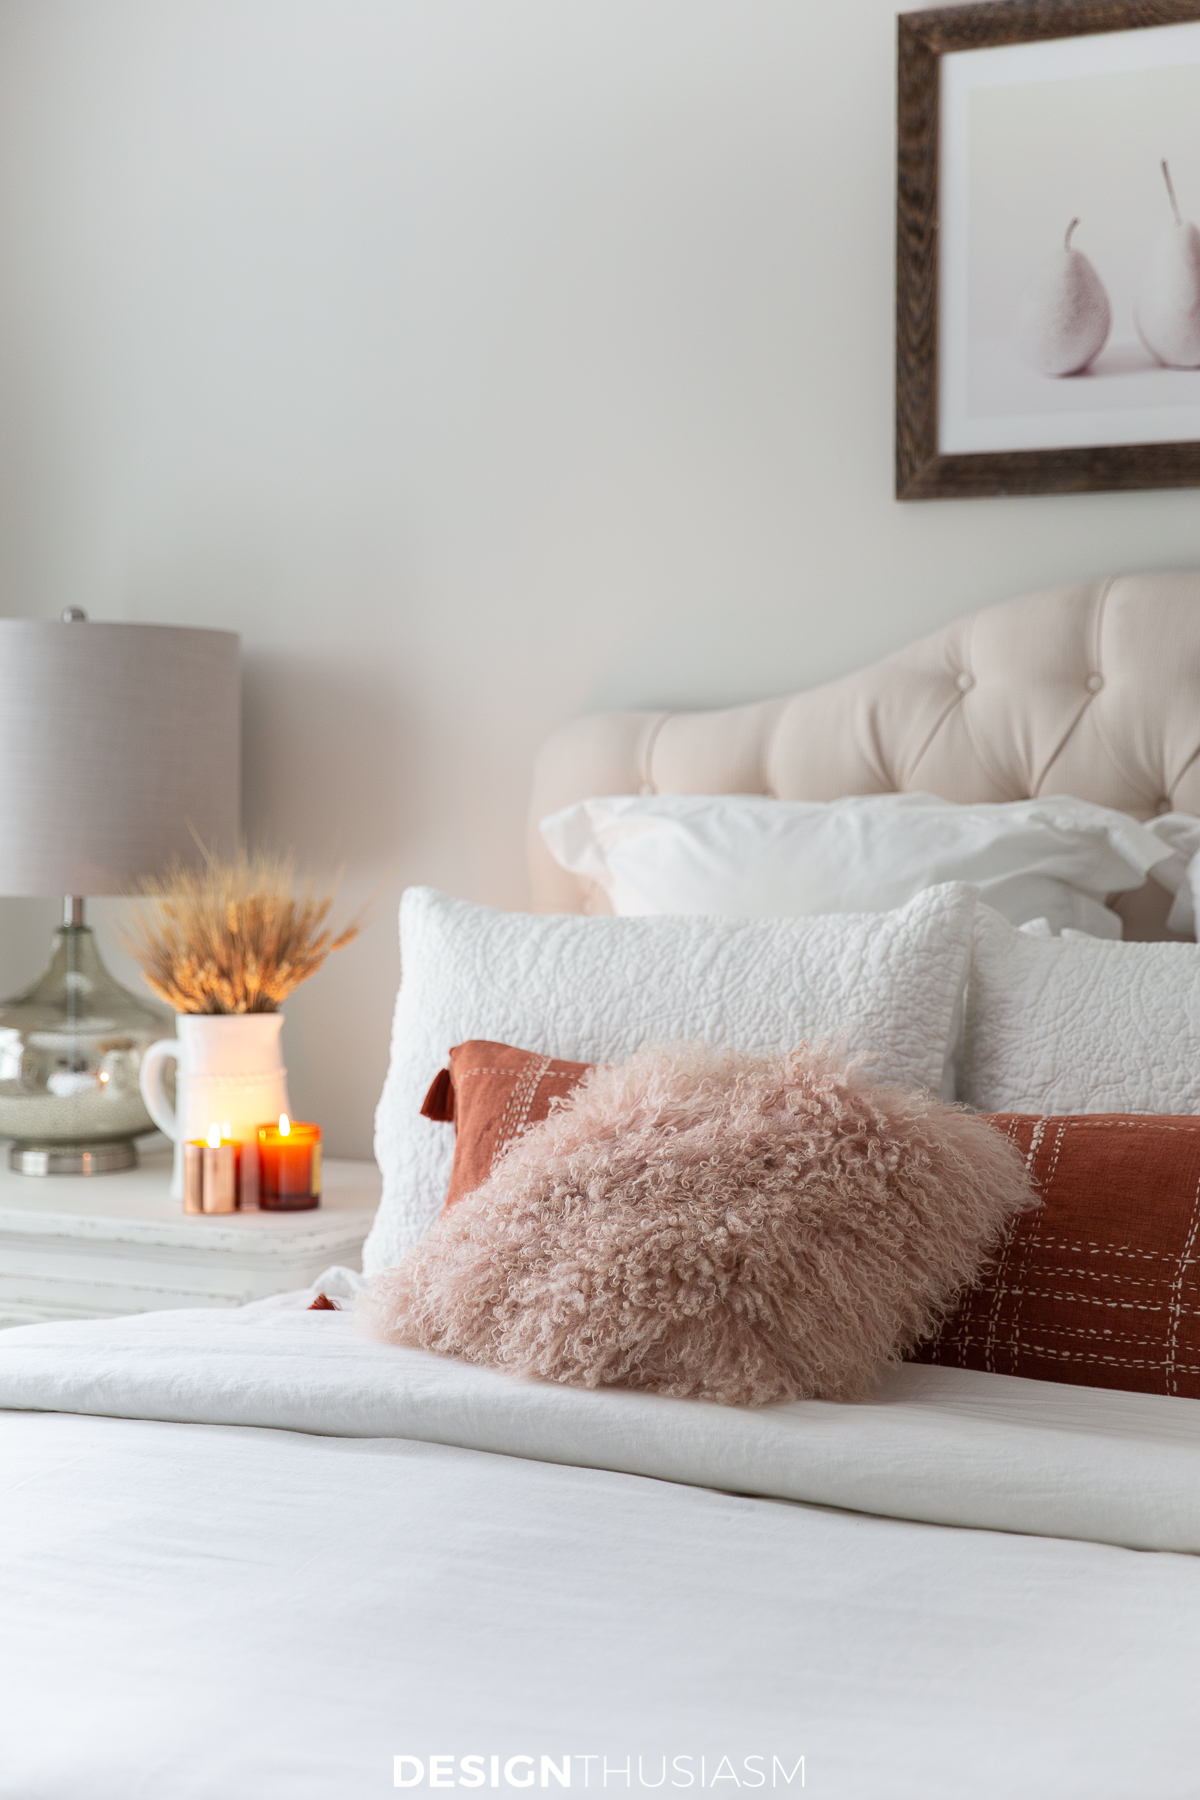 Fall bedroom decor blush and terracotta